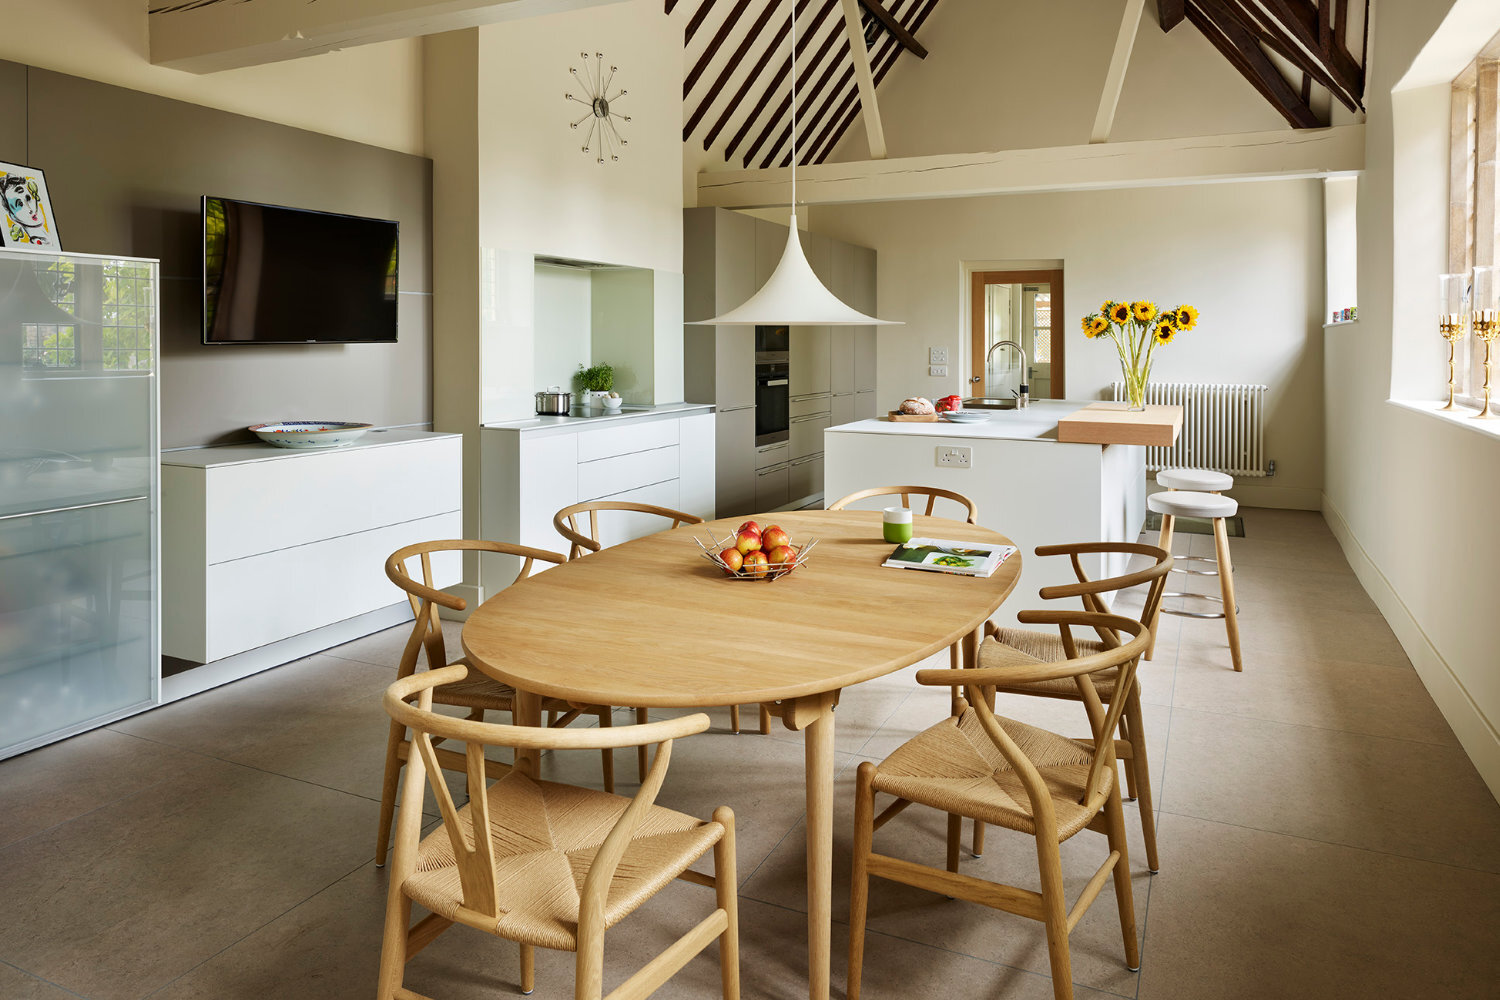 Bulthaup B3 Minimalist Modern Bulthaup Kitchen Period Listed Building<br/> | Luxury Kitchens & Bathrooms | Bath Winchester Swindon | Hobson's Choice